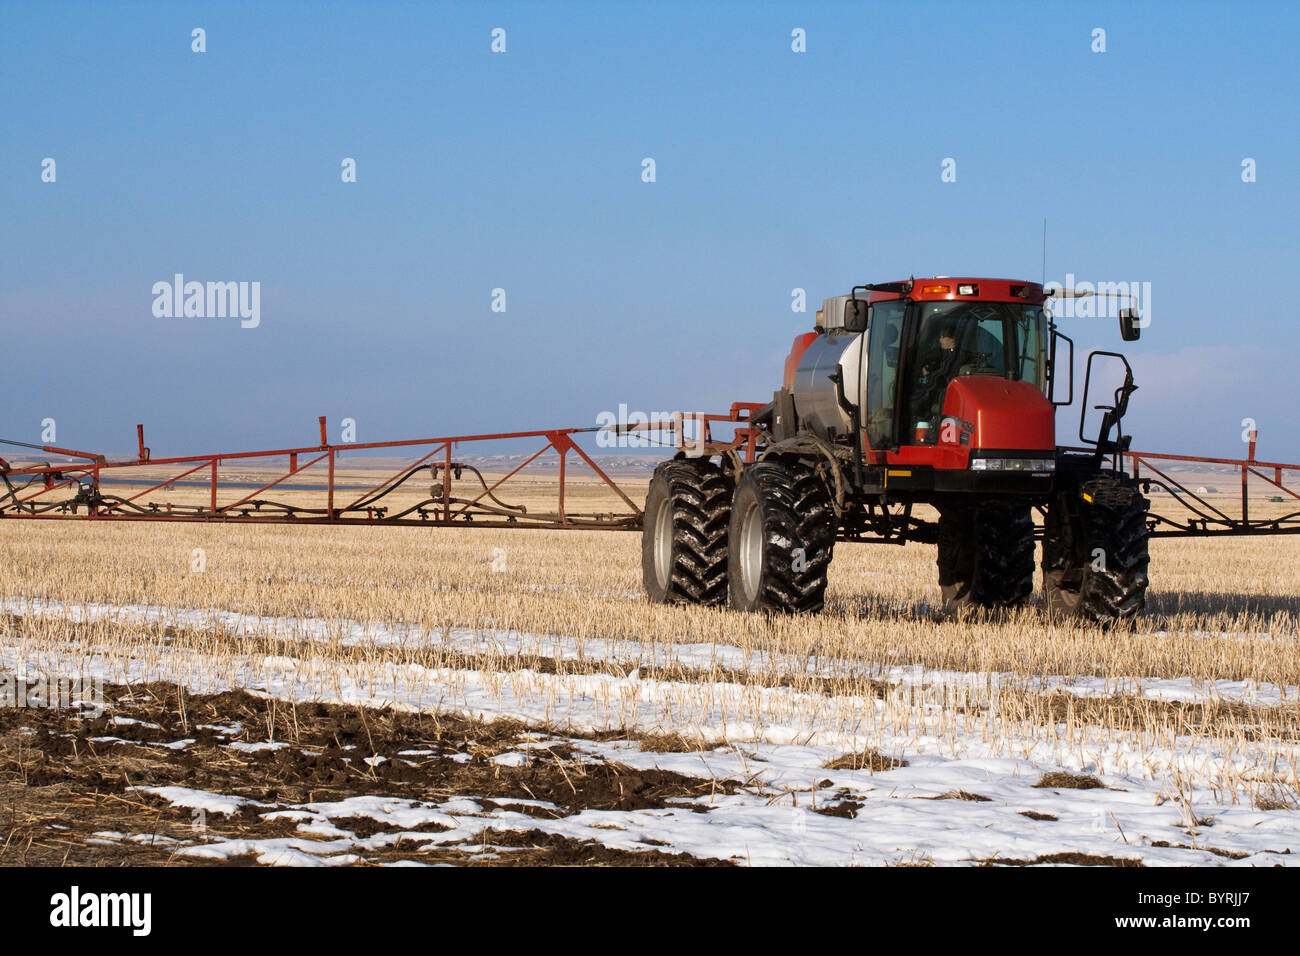 Agriculture - A Case IH Patriot sprayer applies fertilizer to a snow covered field of grain stubble in Spring / - Stock Image